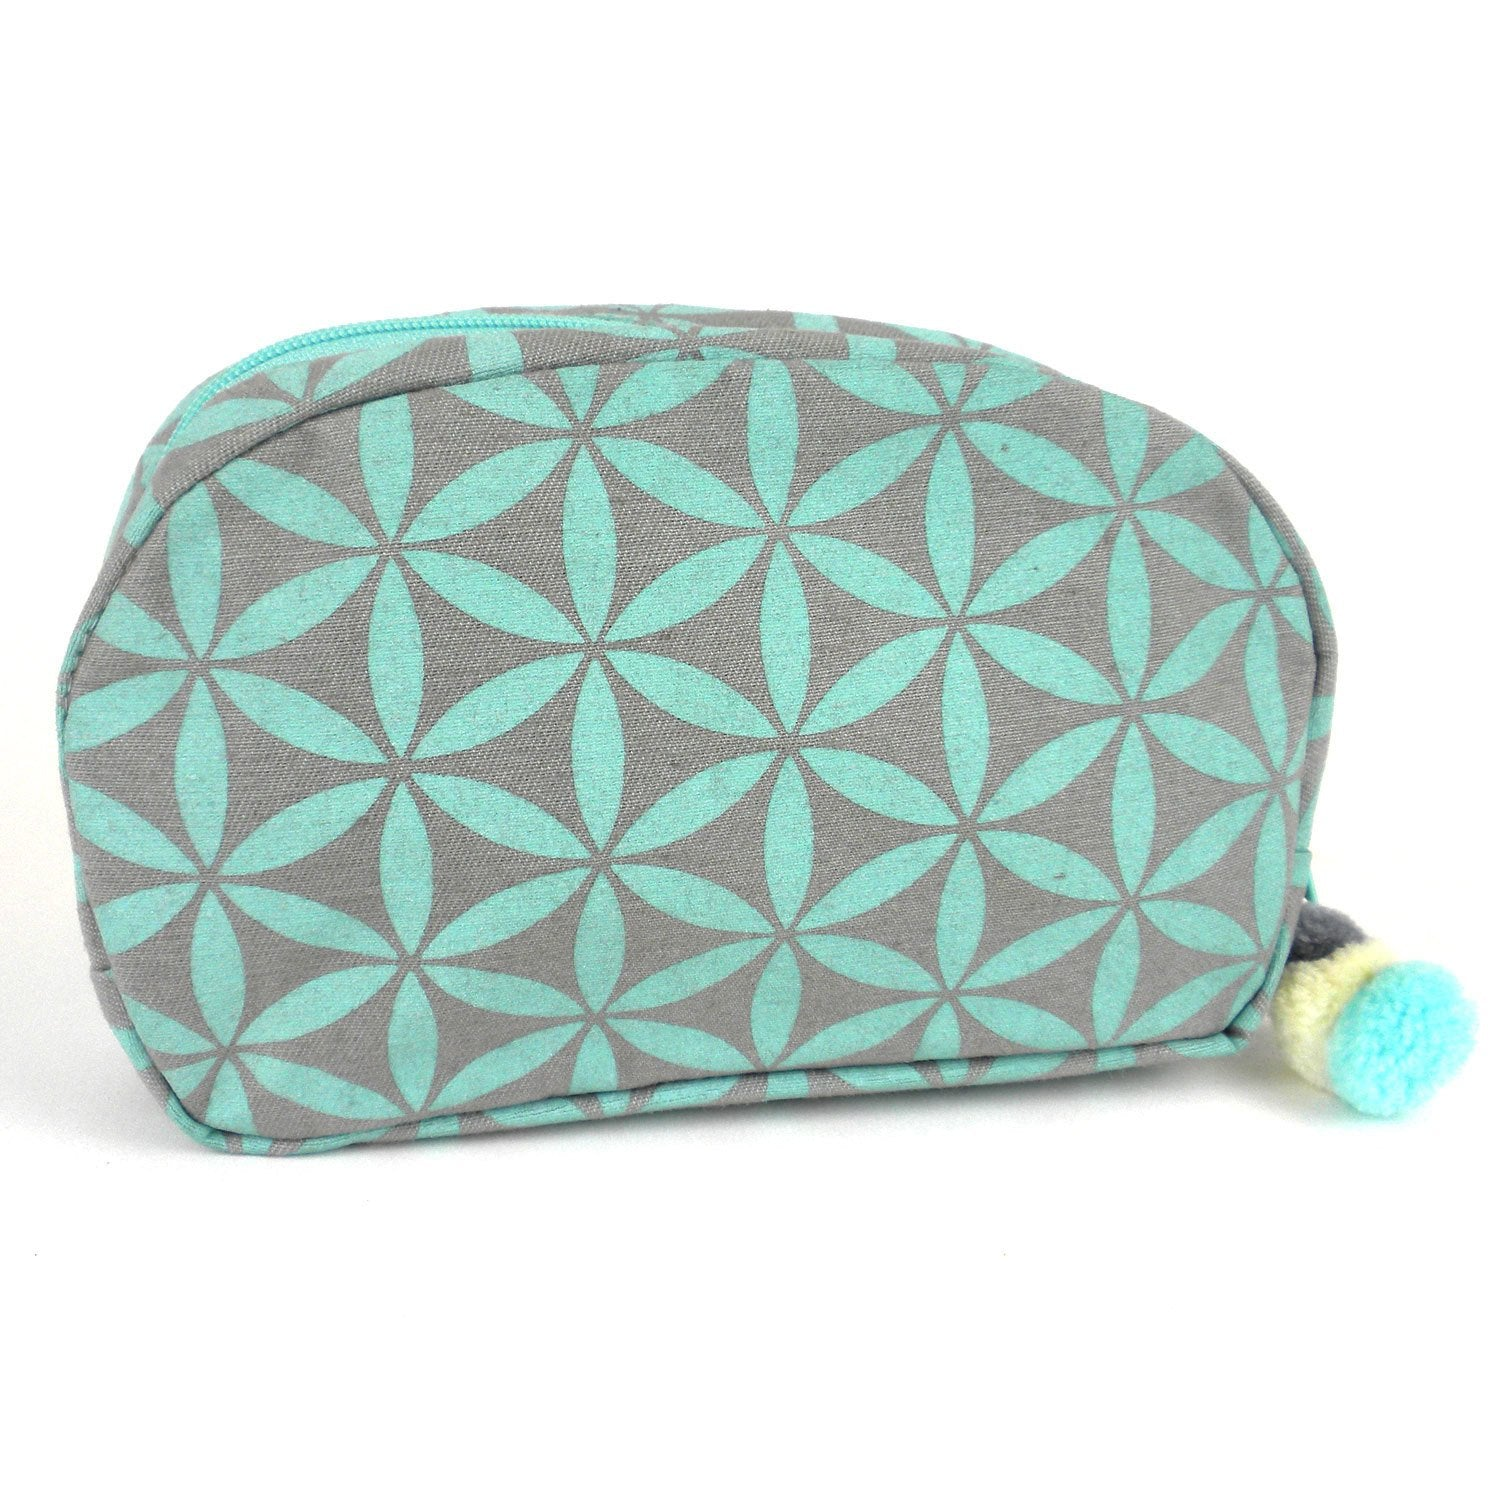 Flower of Life Collection Make-up Bag, Grey/Turquoise